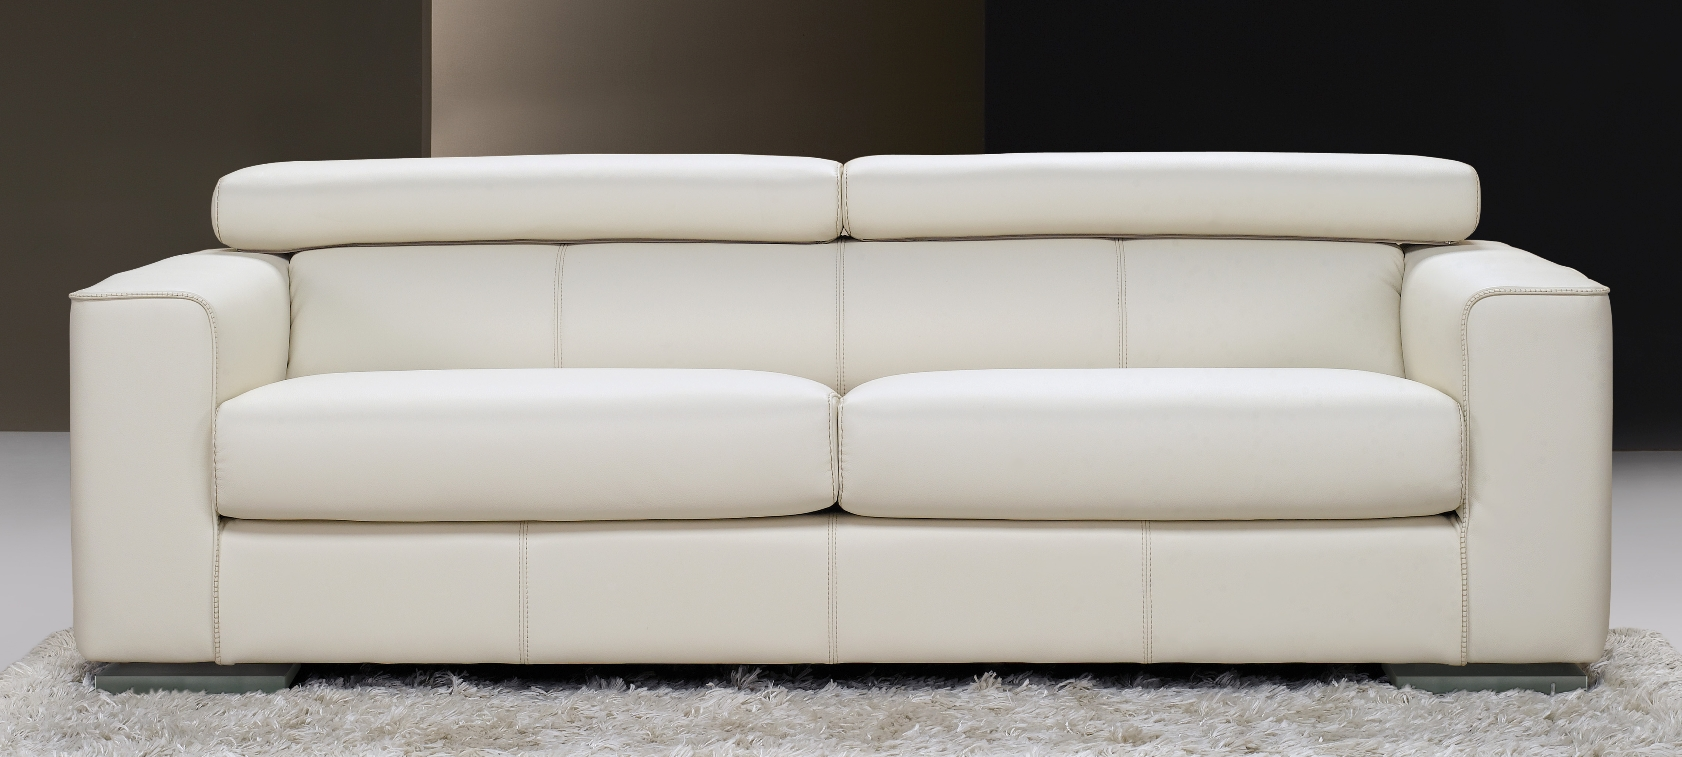 Modern Luxury Leather Sofa. Fine Home Furnishings.